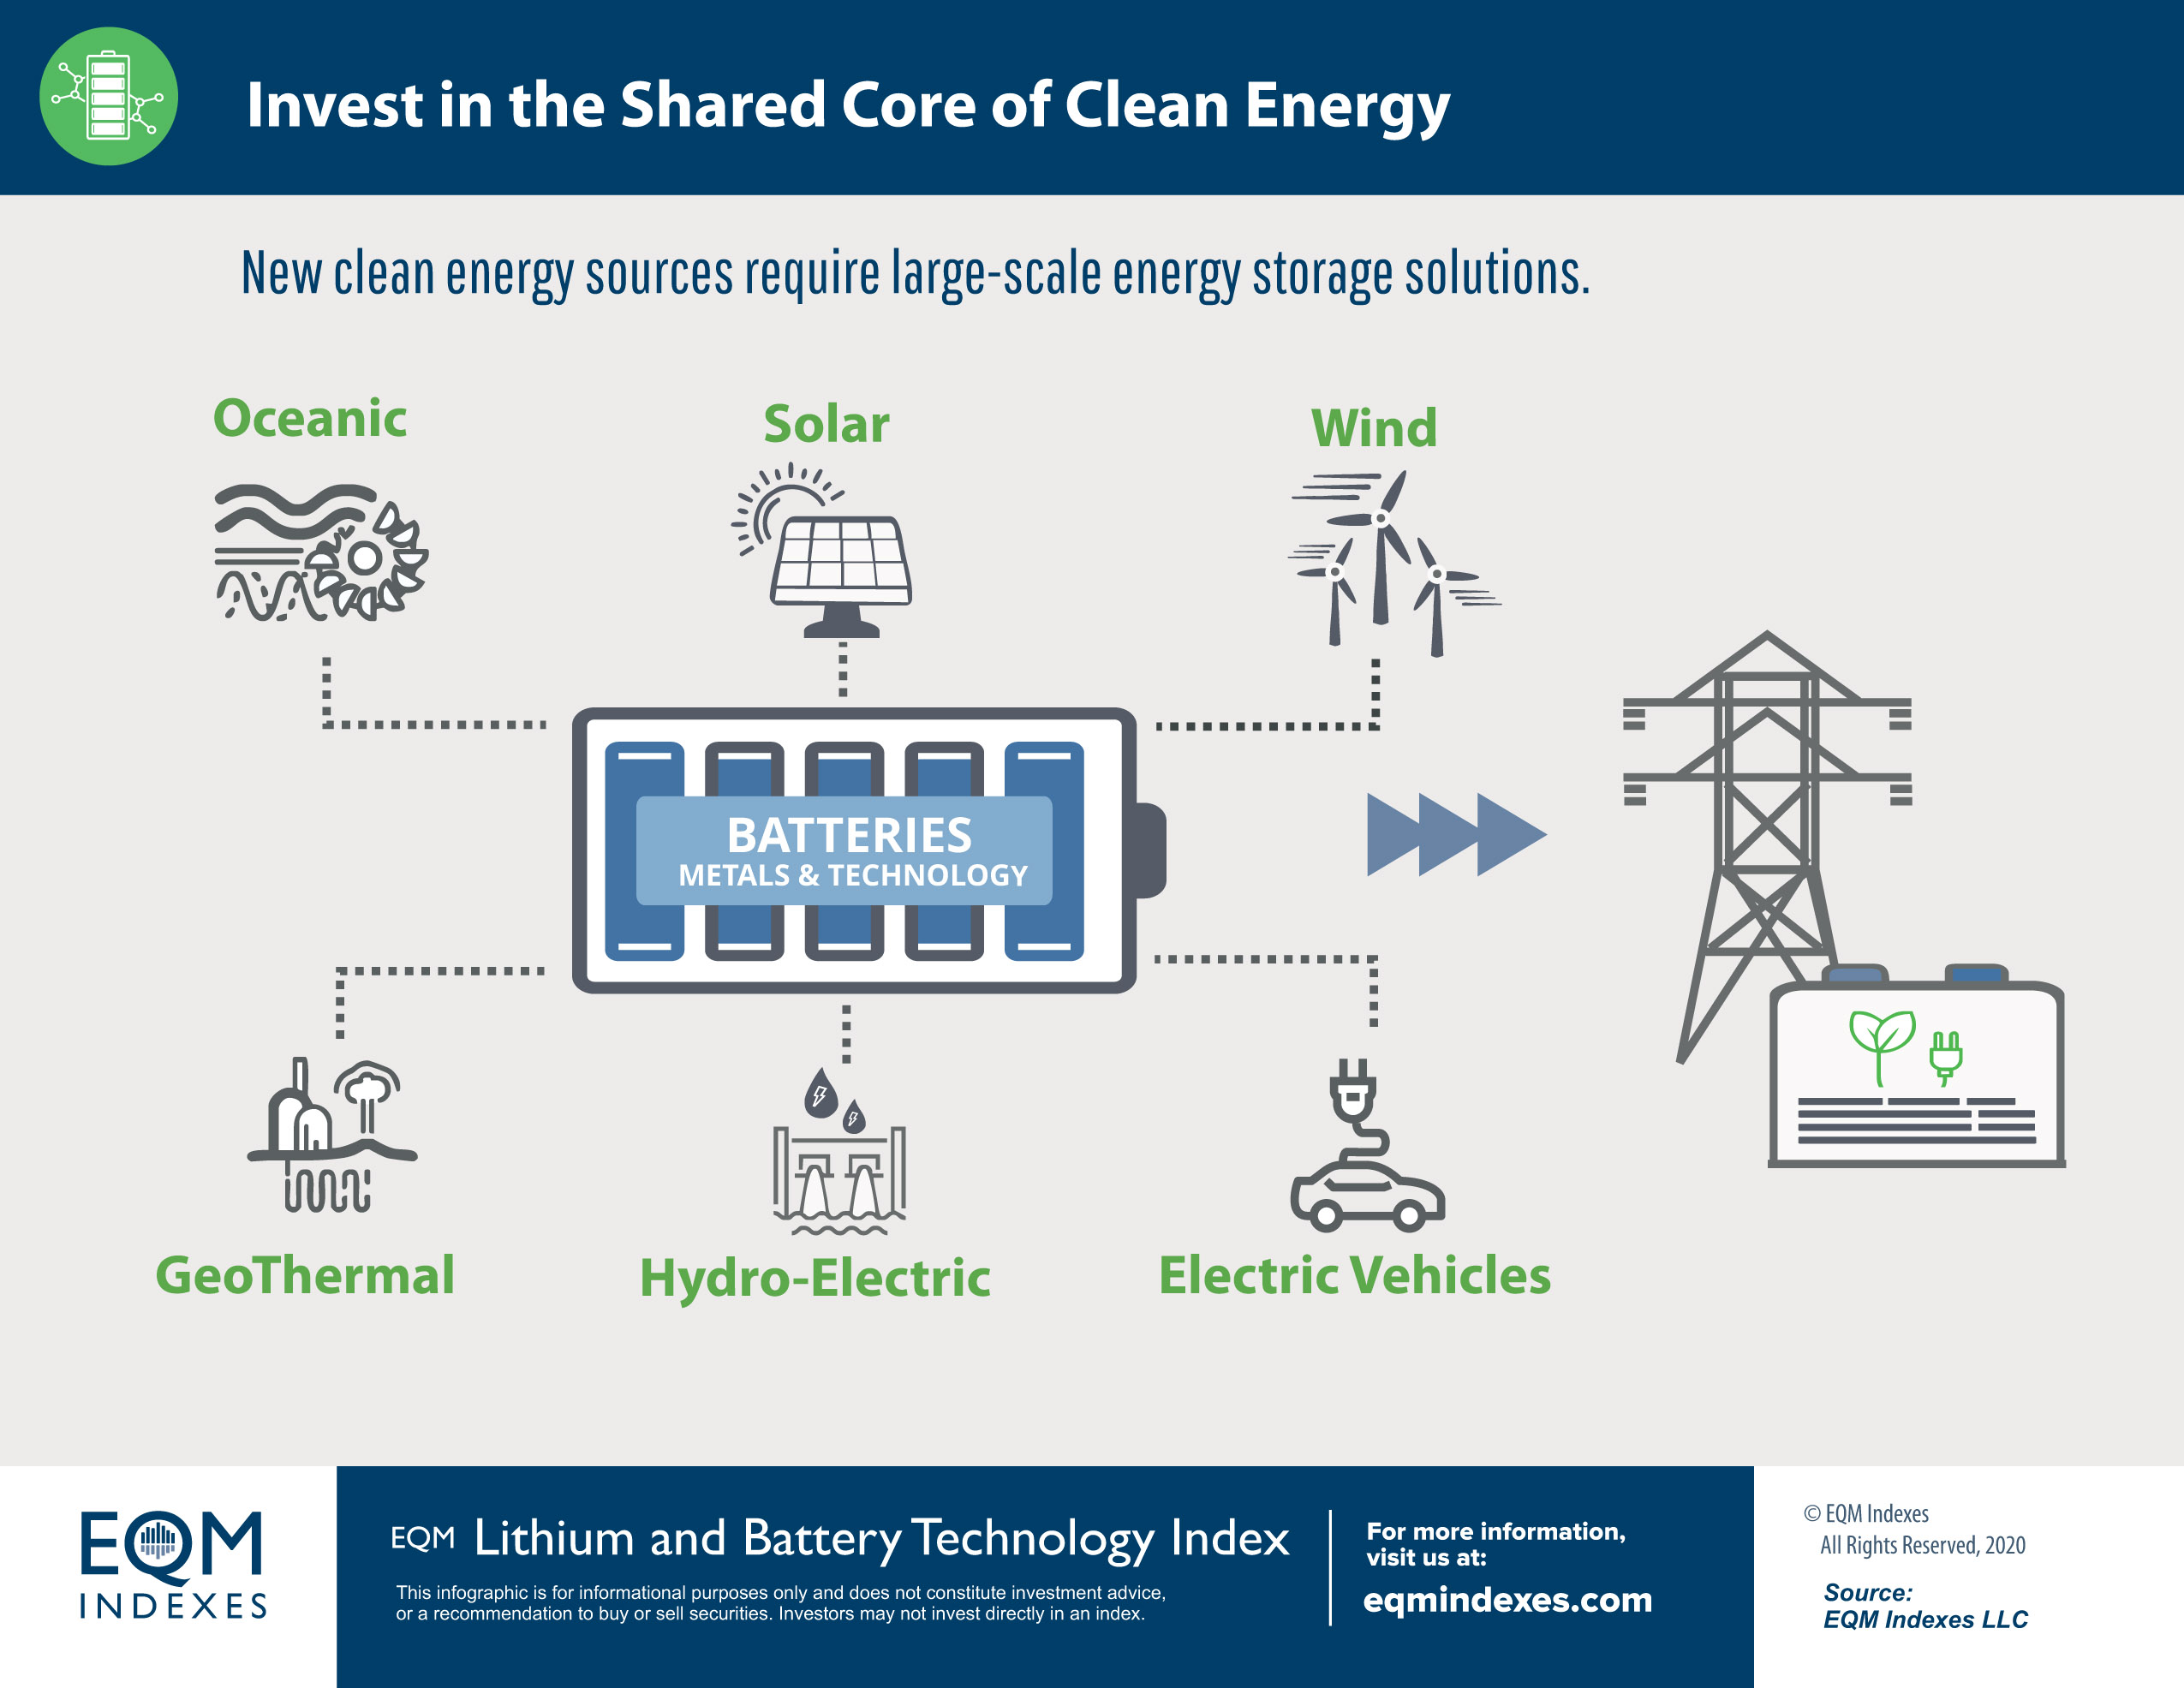 Invest in the Shared Core of Clean Energy